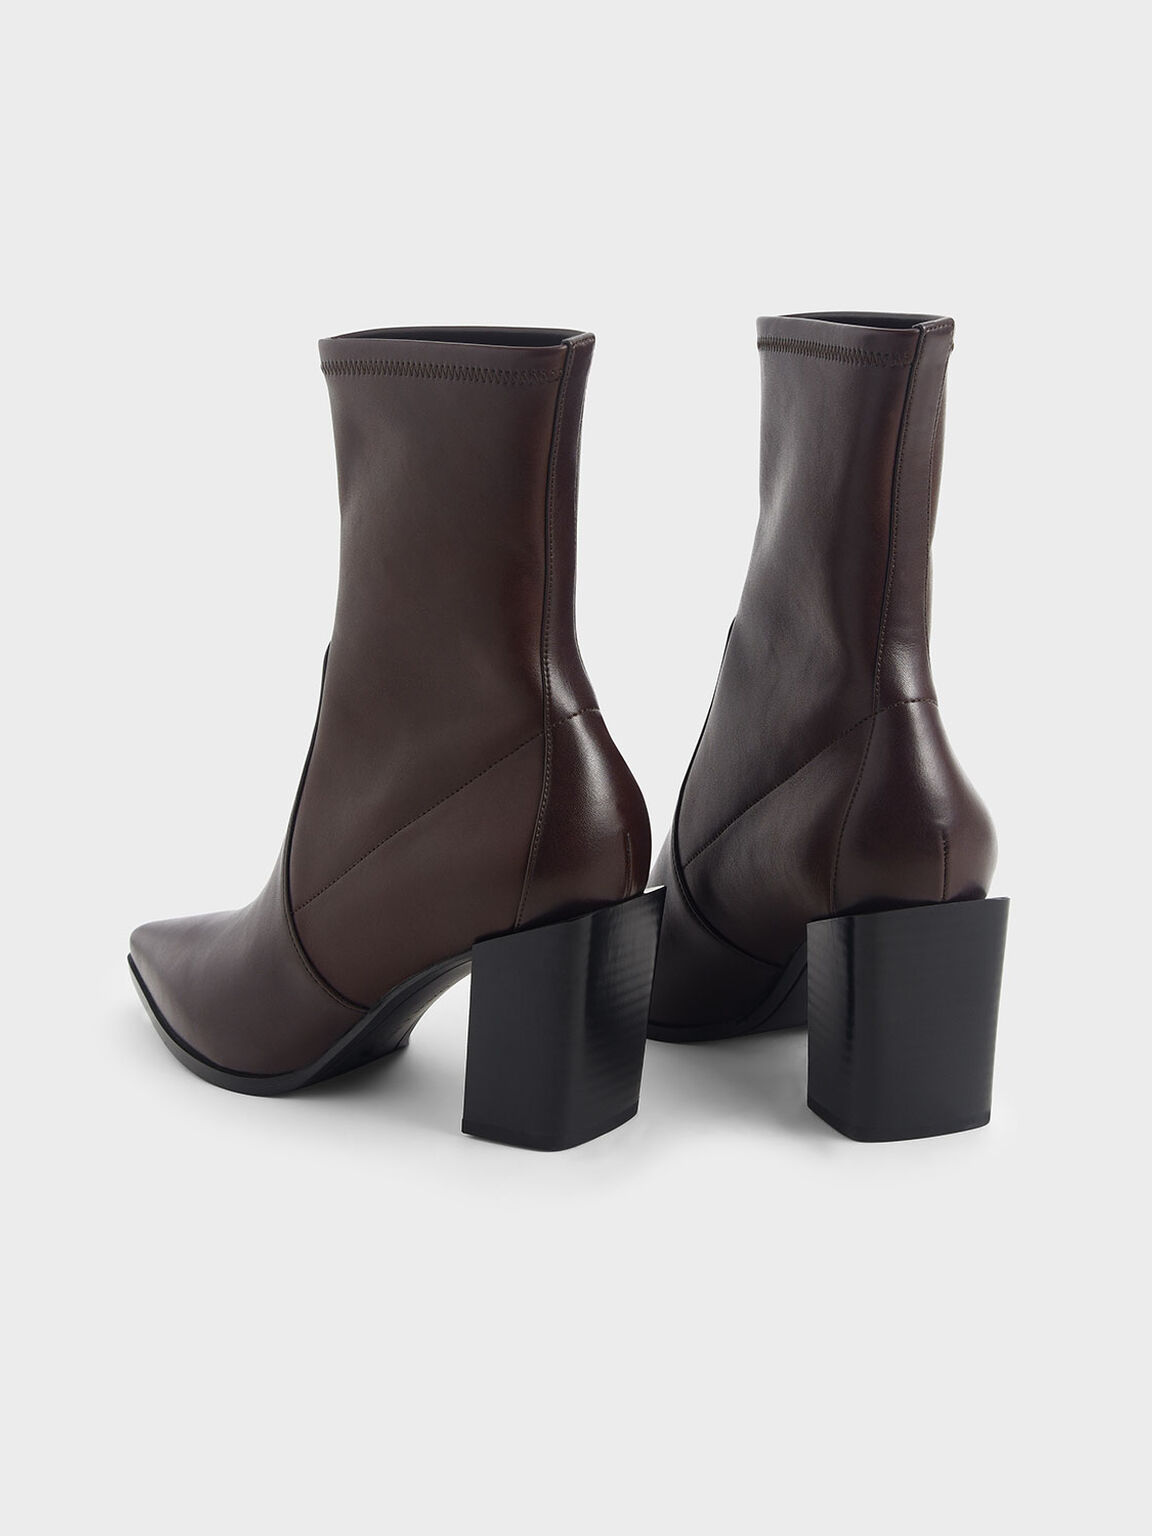 Stacked Heel Ankle Boots, Maroon, hi-res